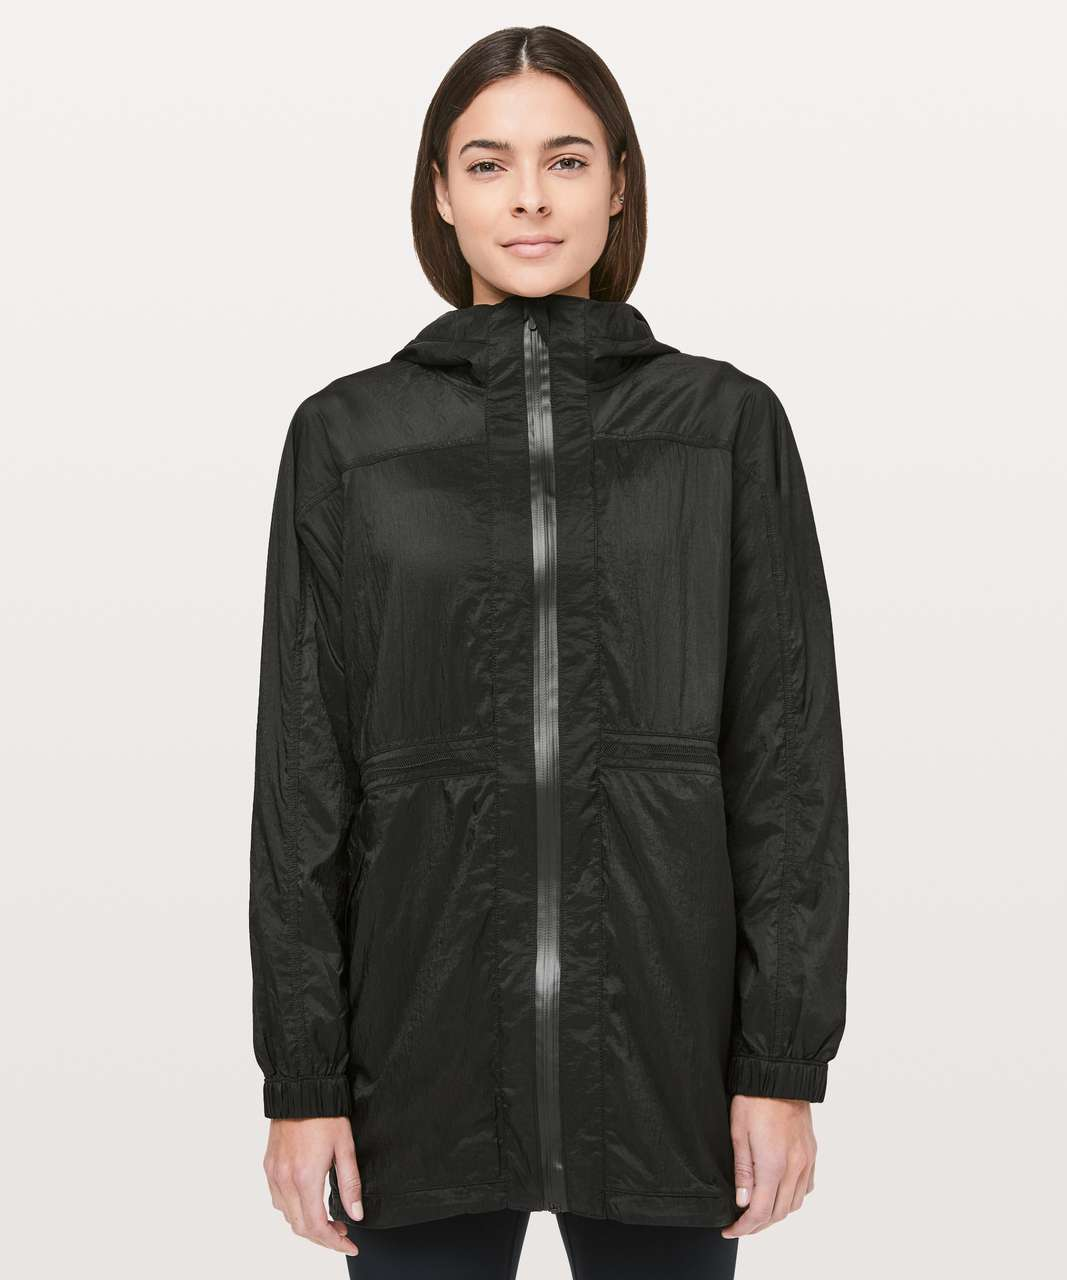 Lululemon In The Clear Jacket - Black